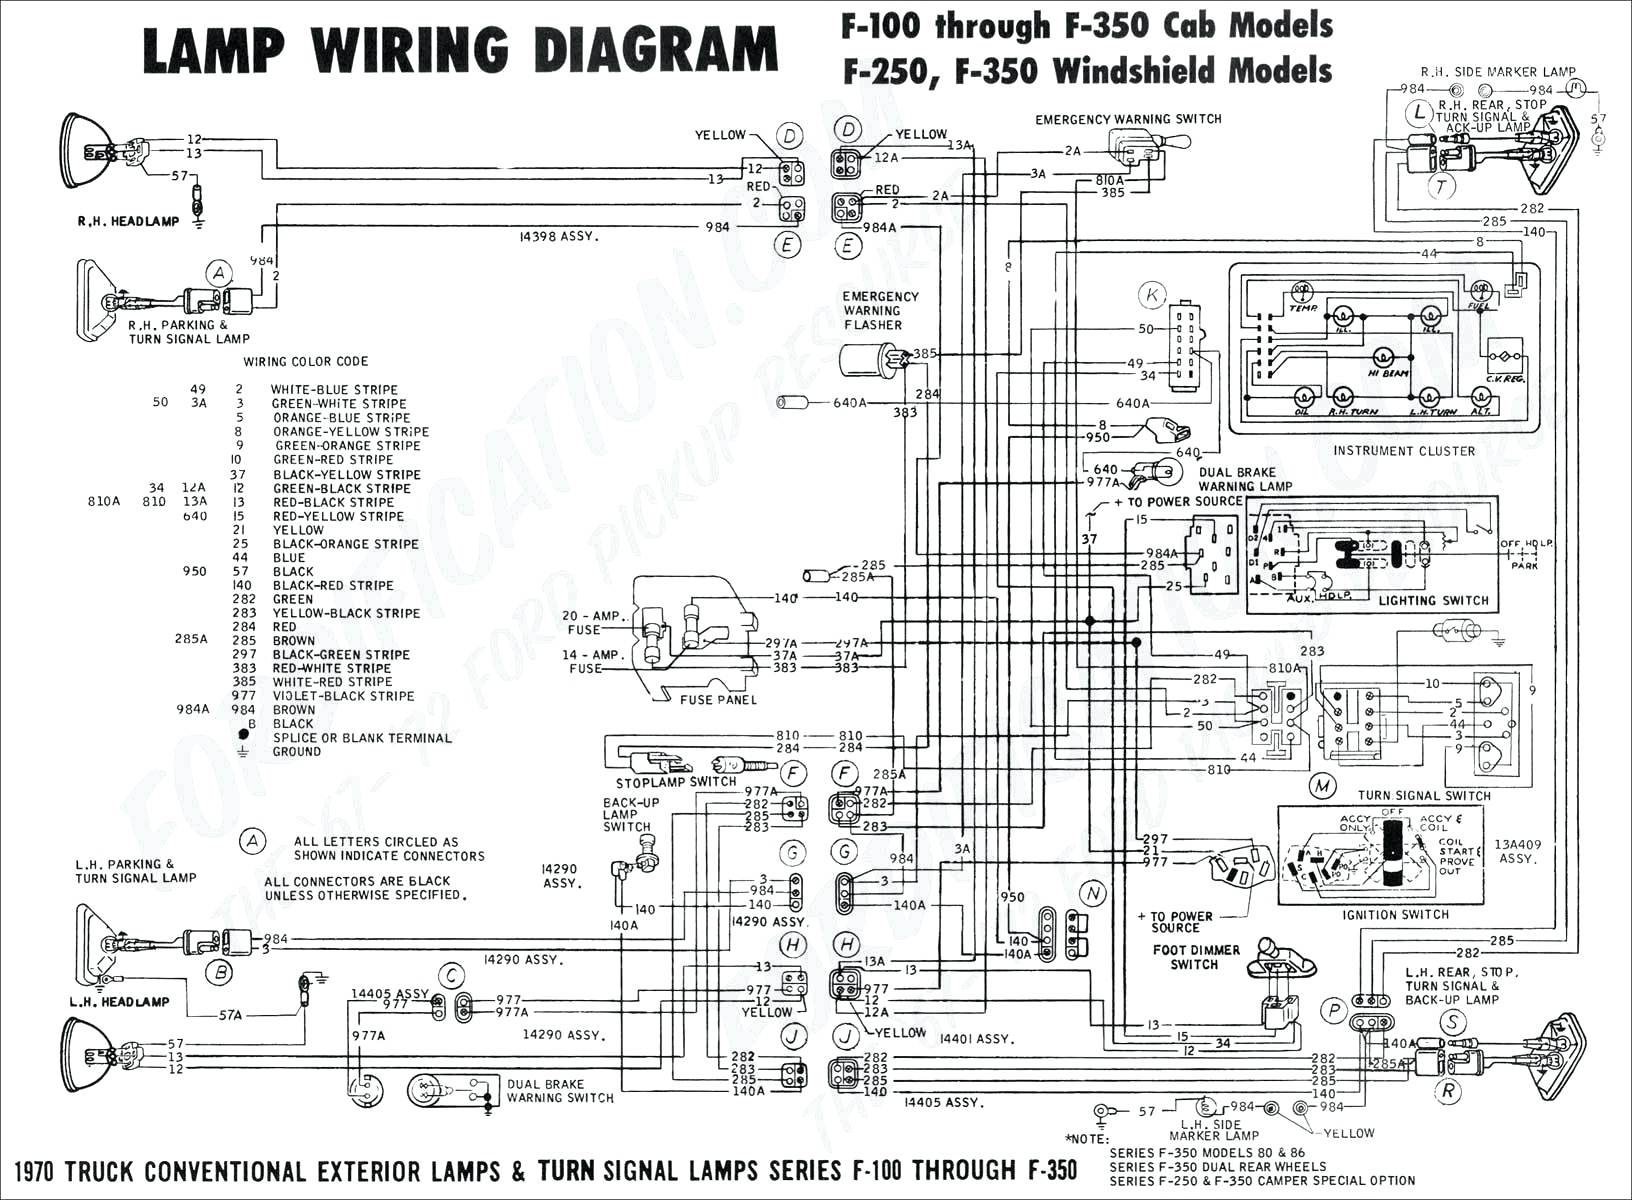 2003 dodge ram 2500 trailer wiring diagram Download-thread 2005 dodge ram wiring diagram wire center u2022 rh inspeere co 18-j